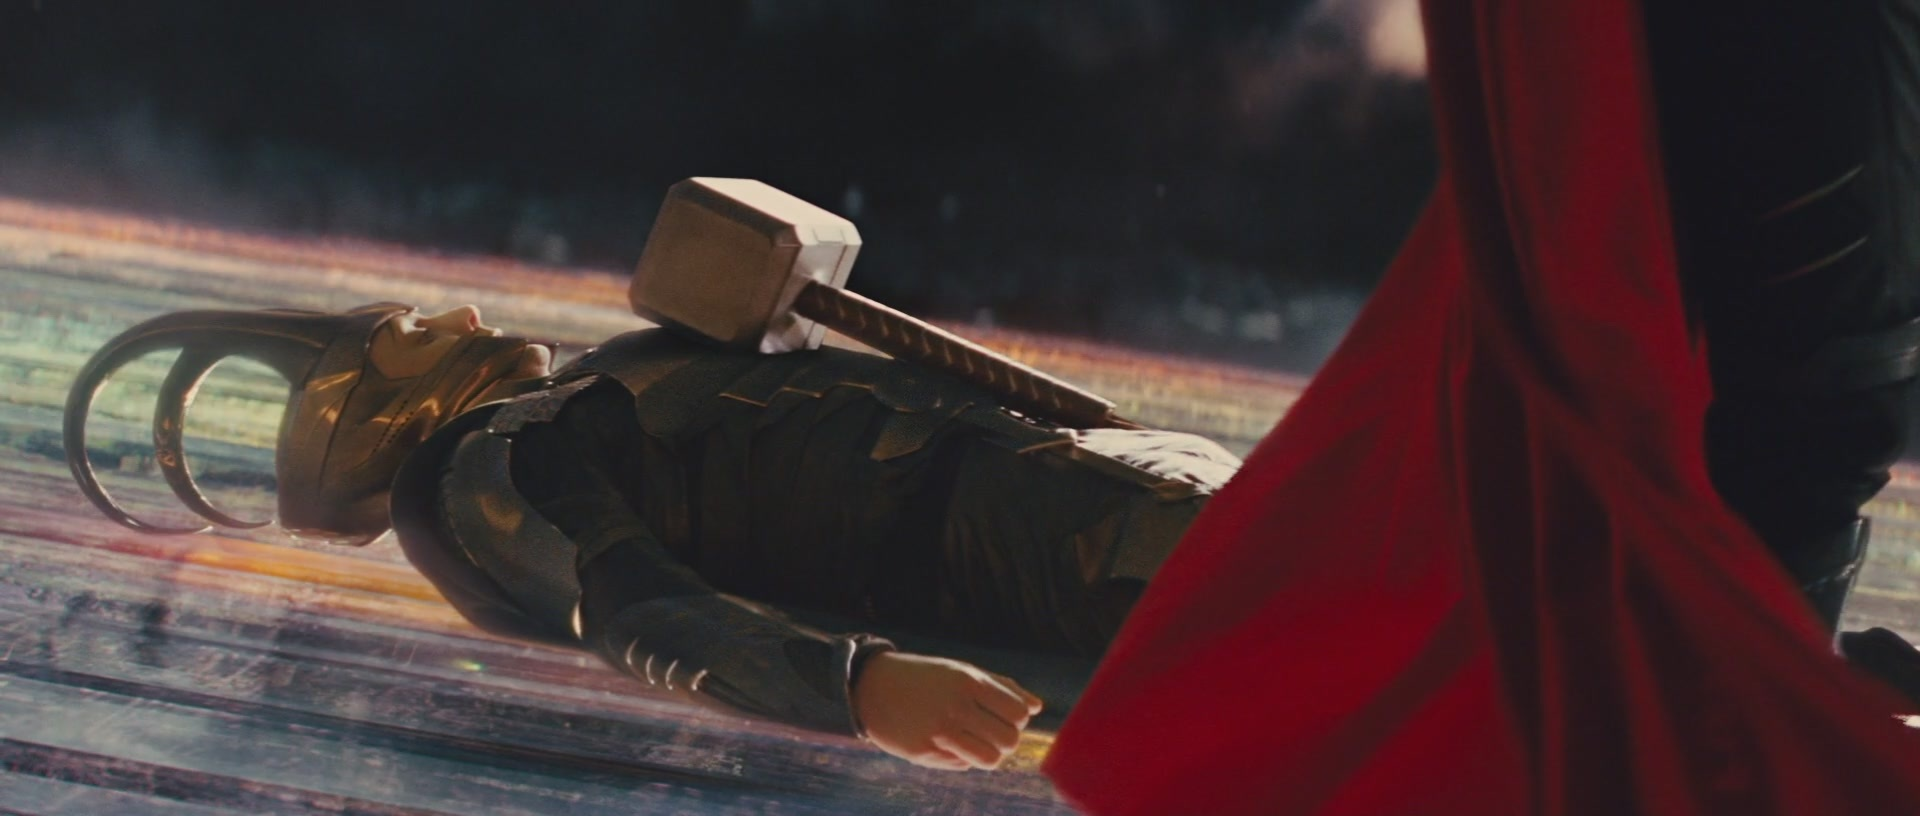 Year Of Action >> Thor (2011) - Thor (2011) Image (26230928) - Fanpop